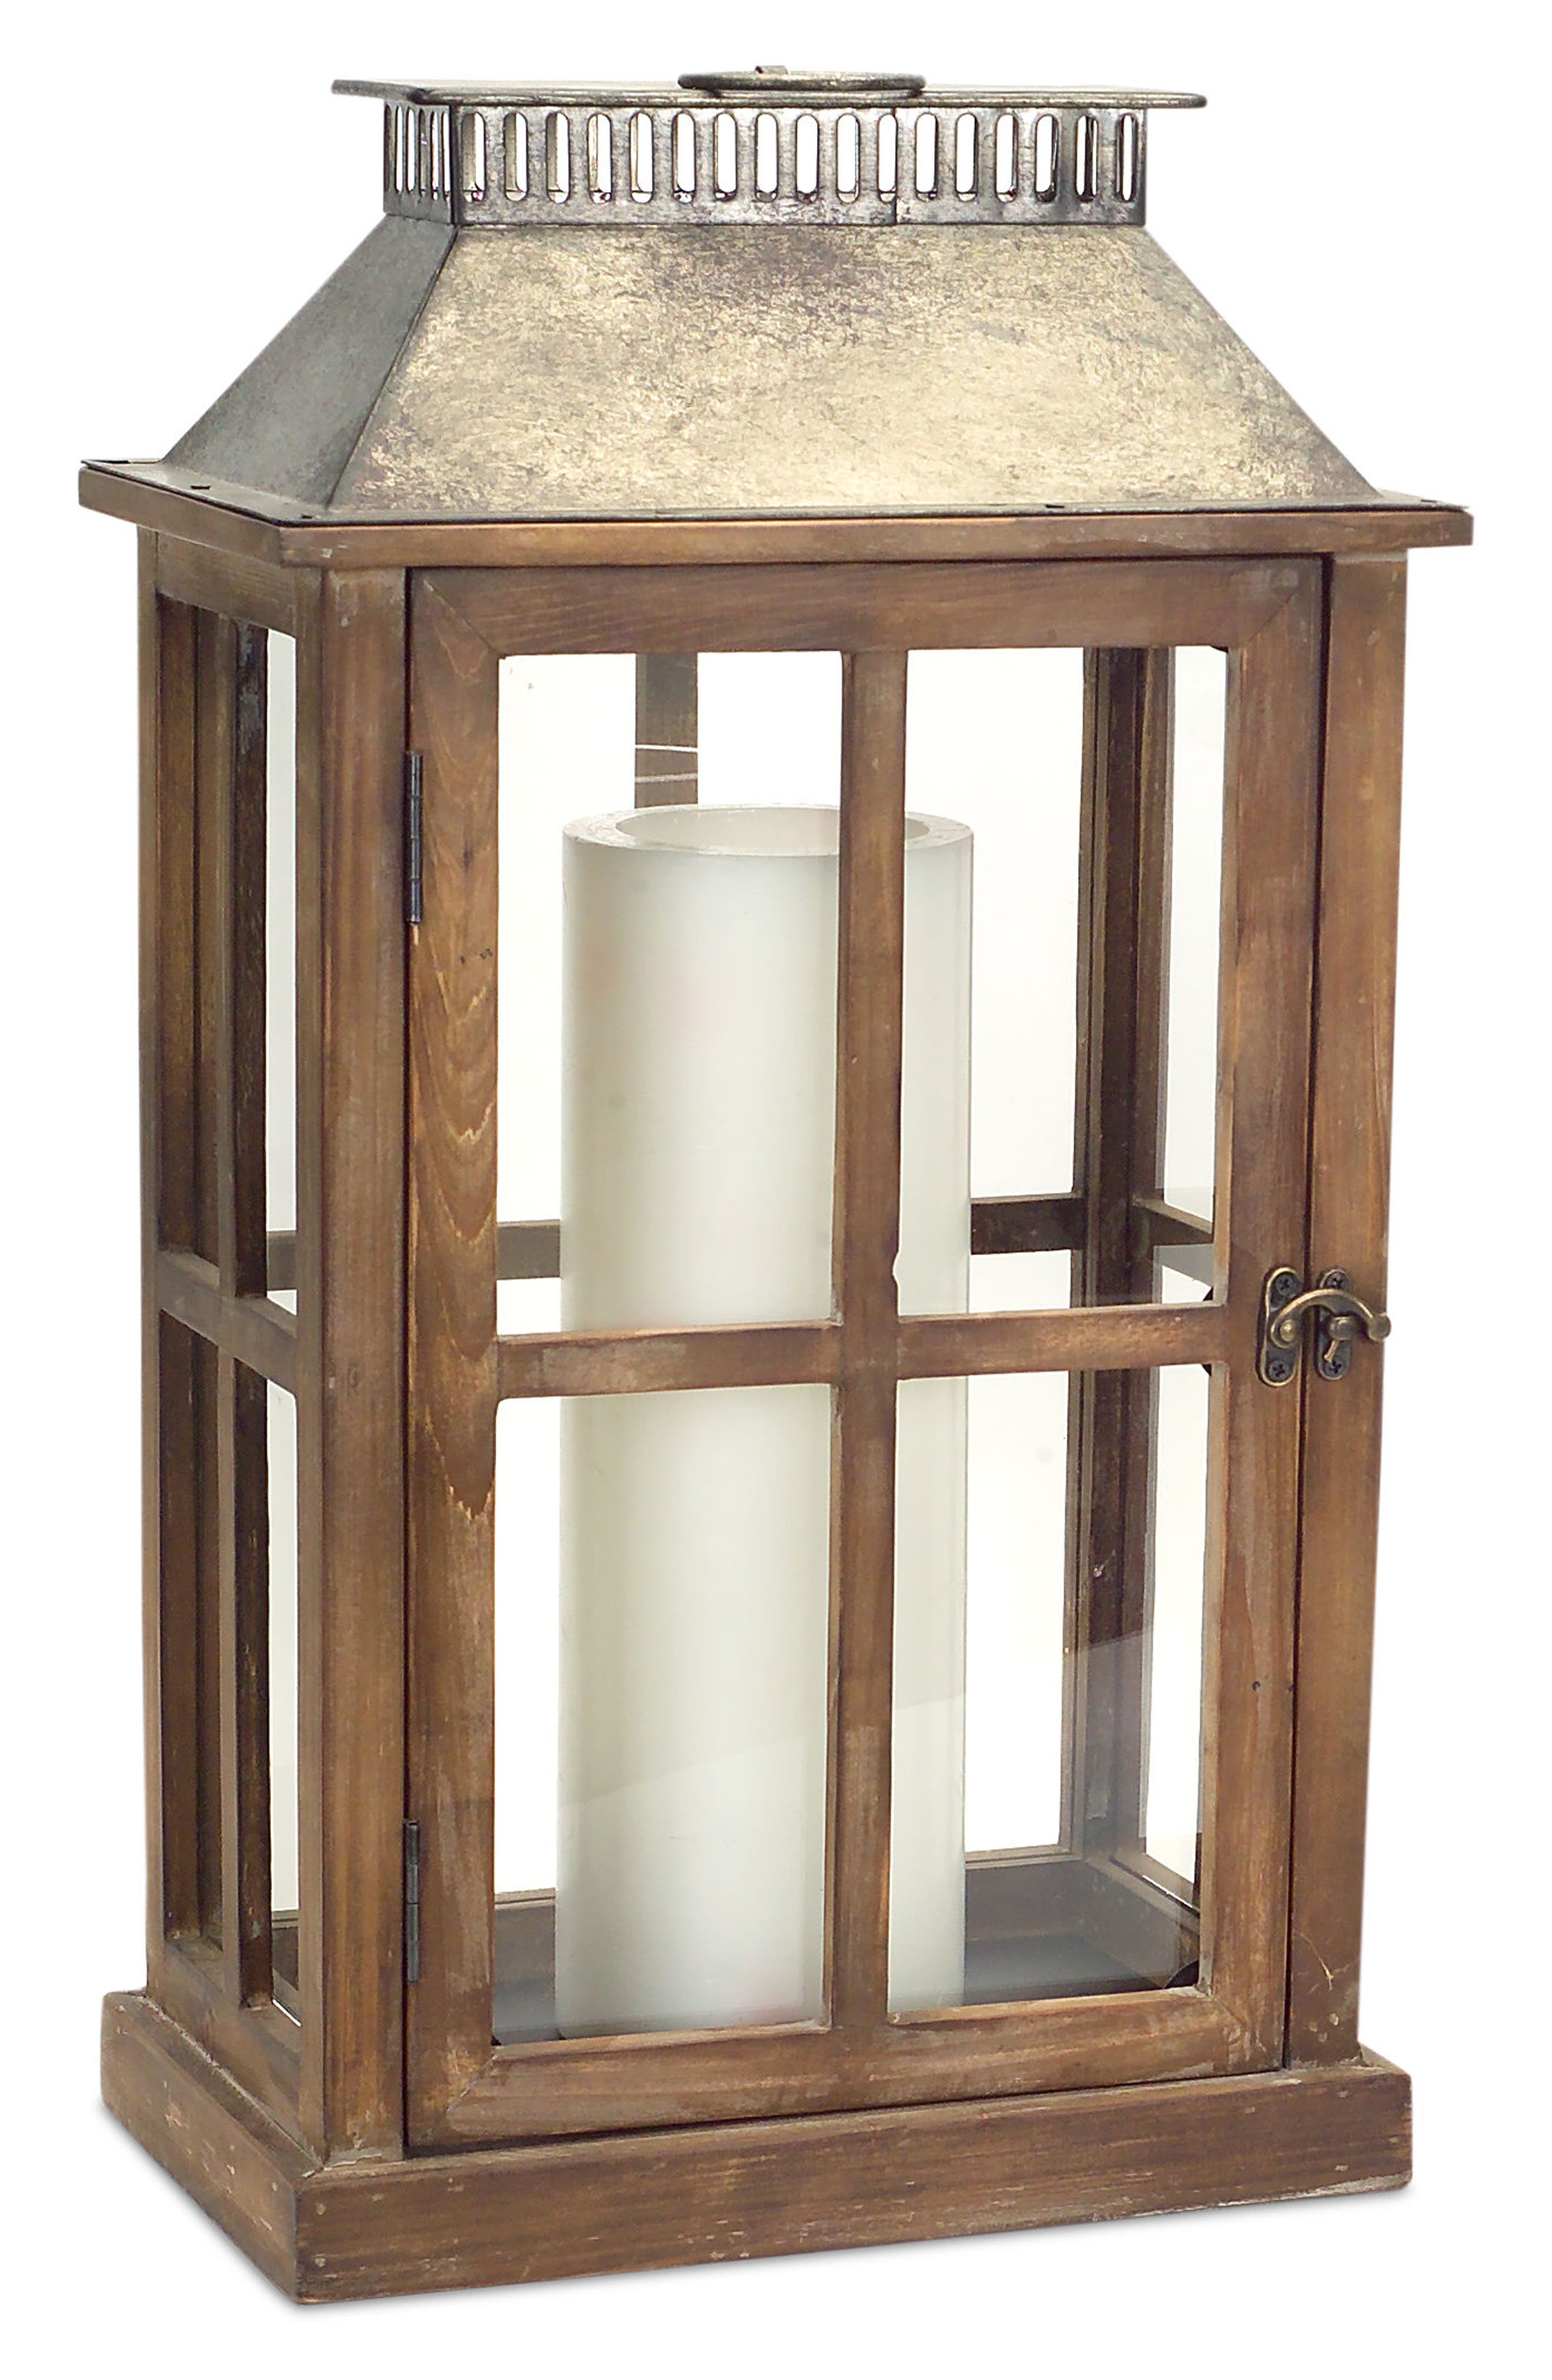 Set of 2 Decorative Lanterns,                             Alternate thumbnail 2, color,                             Brown